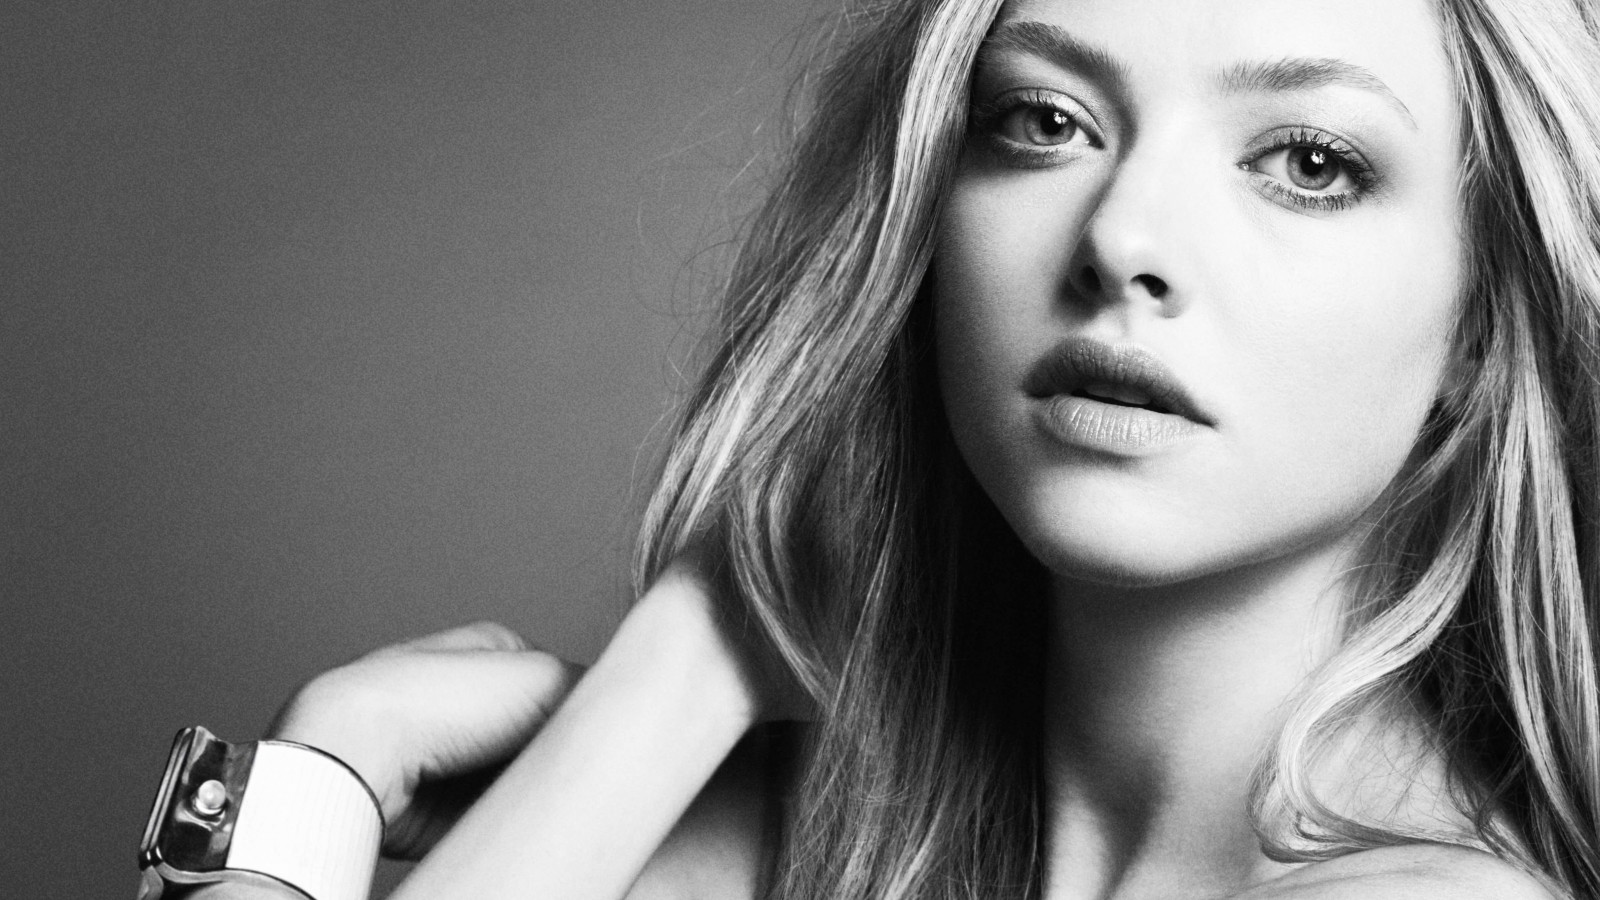 Amanda Seyfried Black & White Portrait Wallpaper for Desktop 1600x900